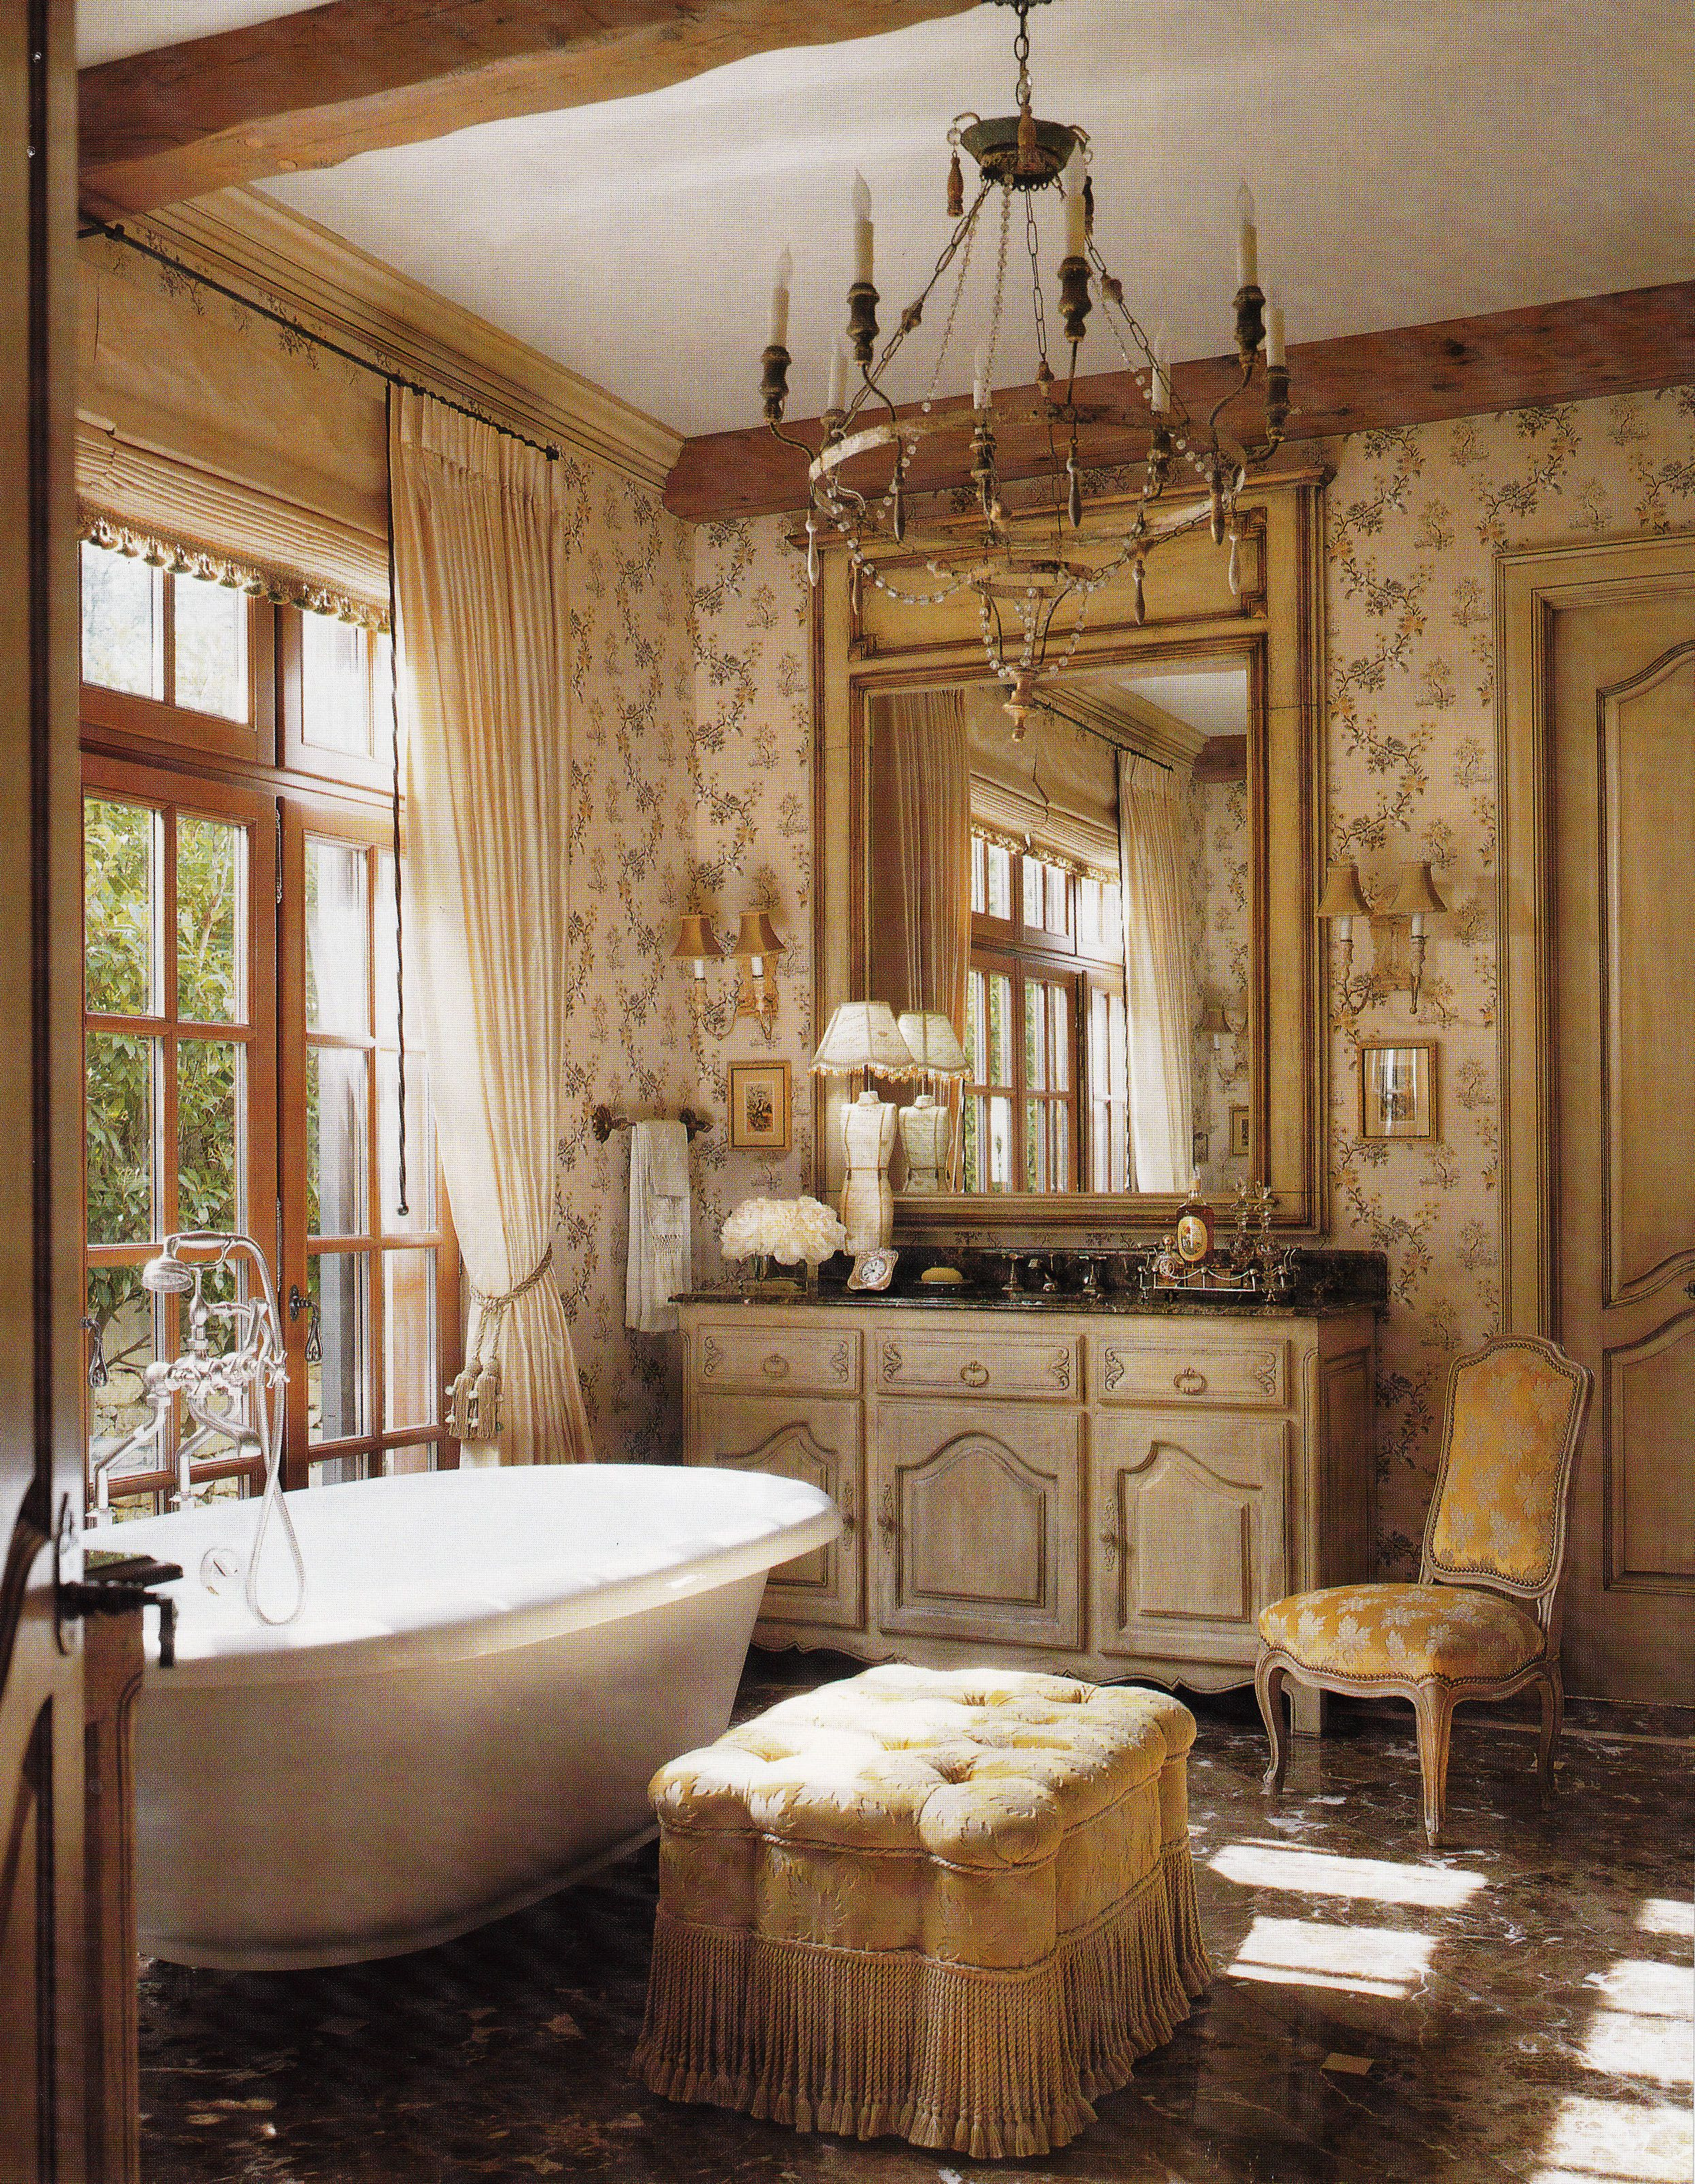 Country French Bathroom Decor Elegant Country French Bathroom Jack & Susan Arnold Architect and